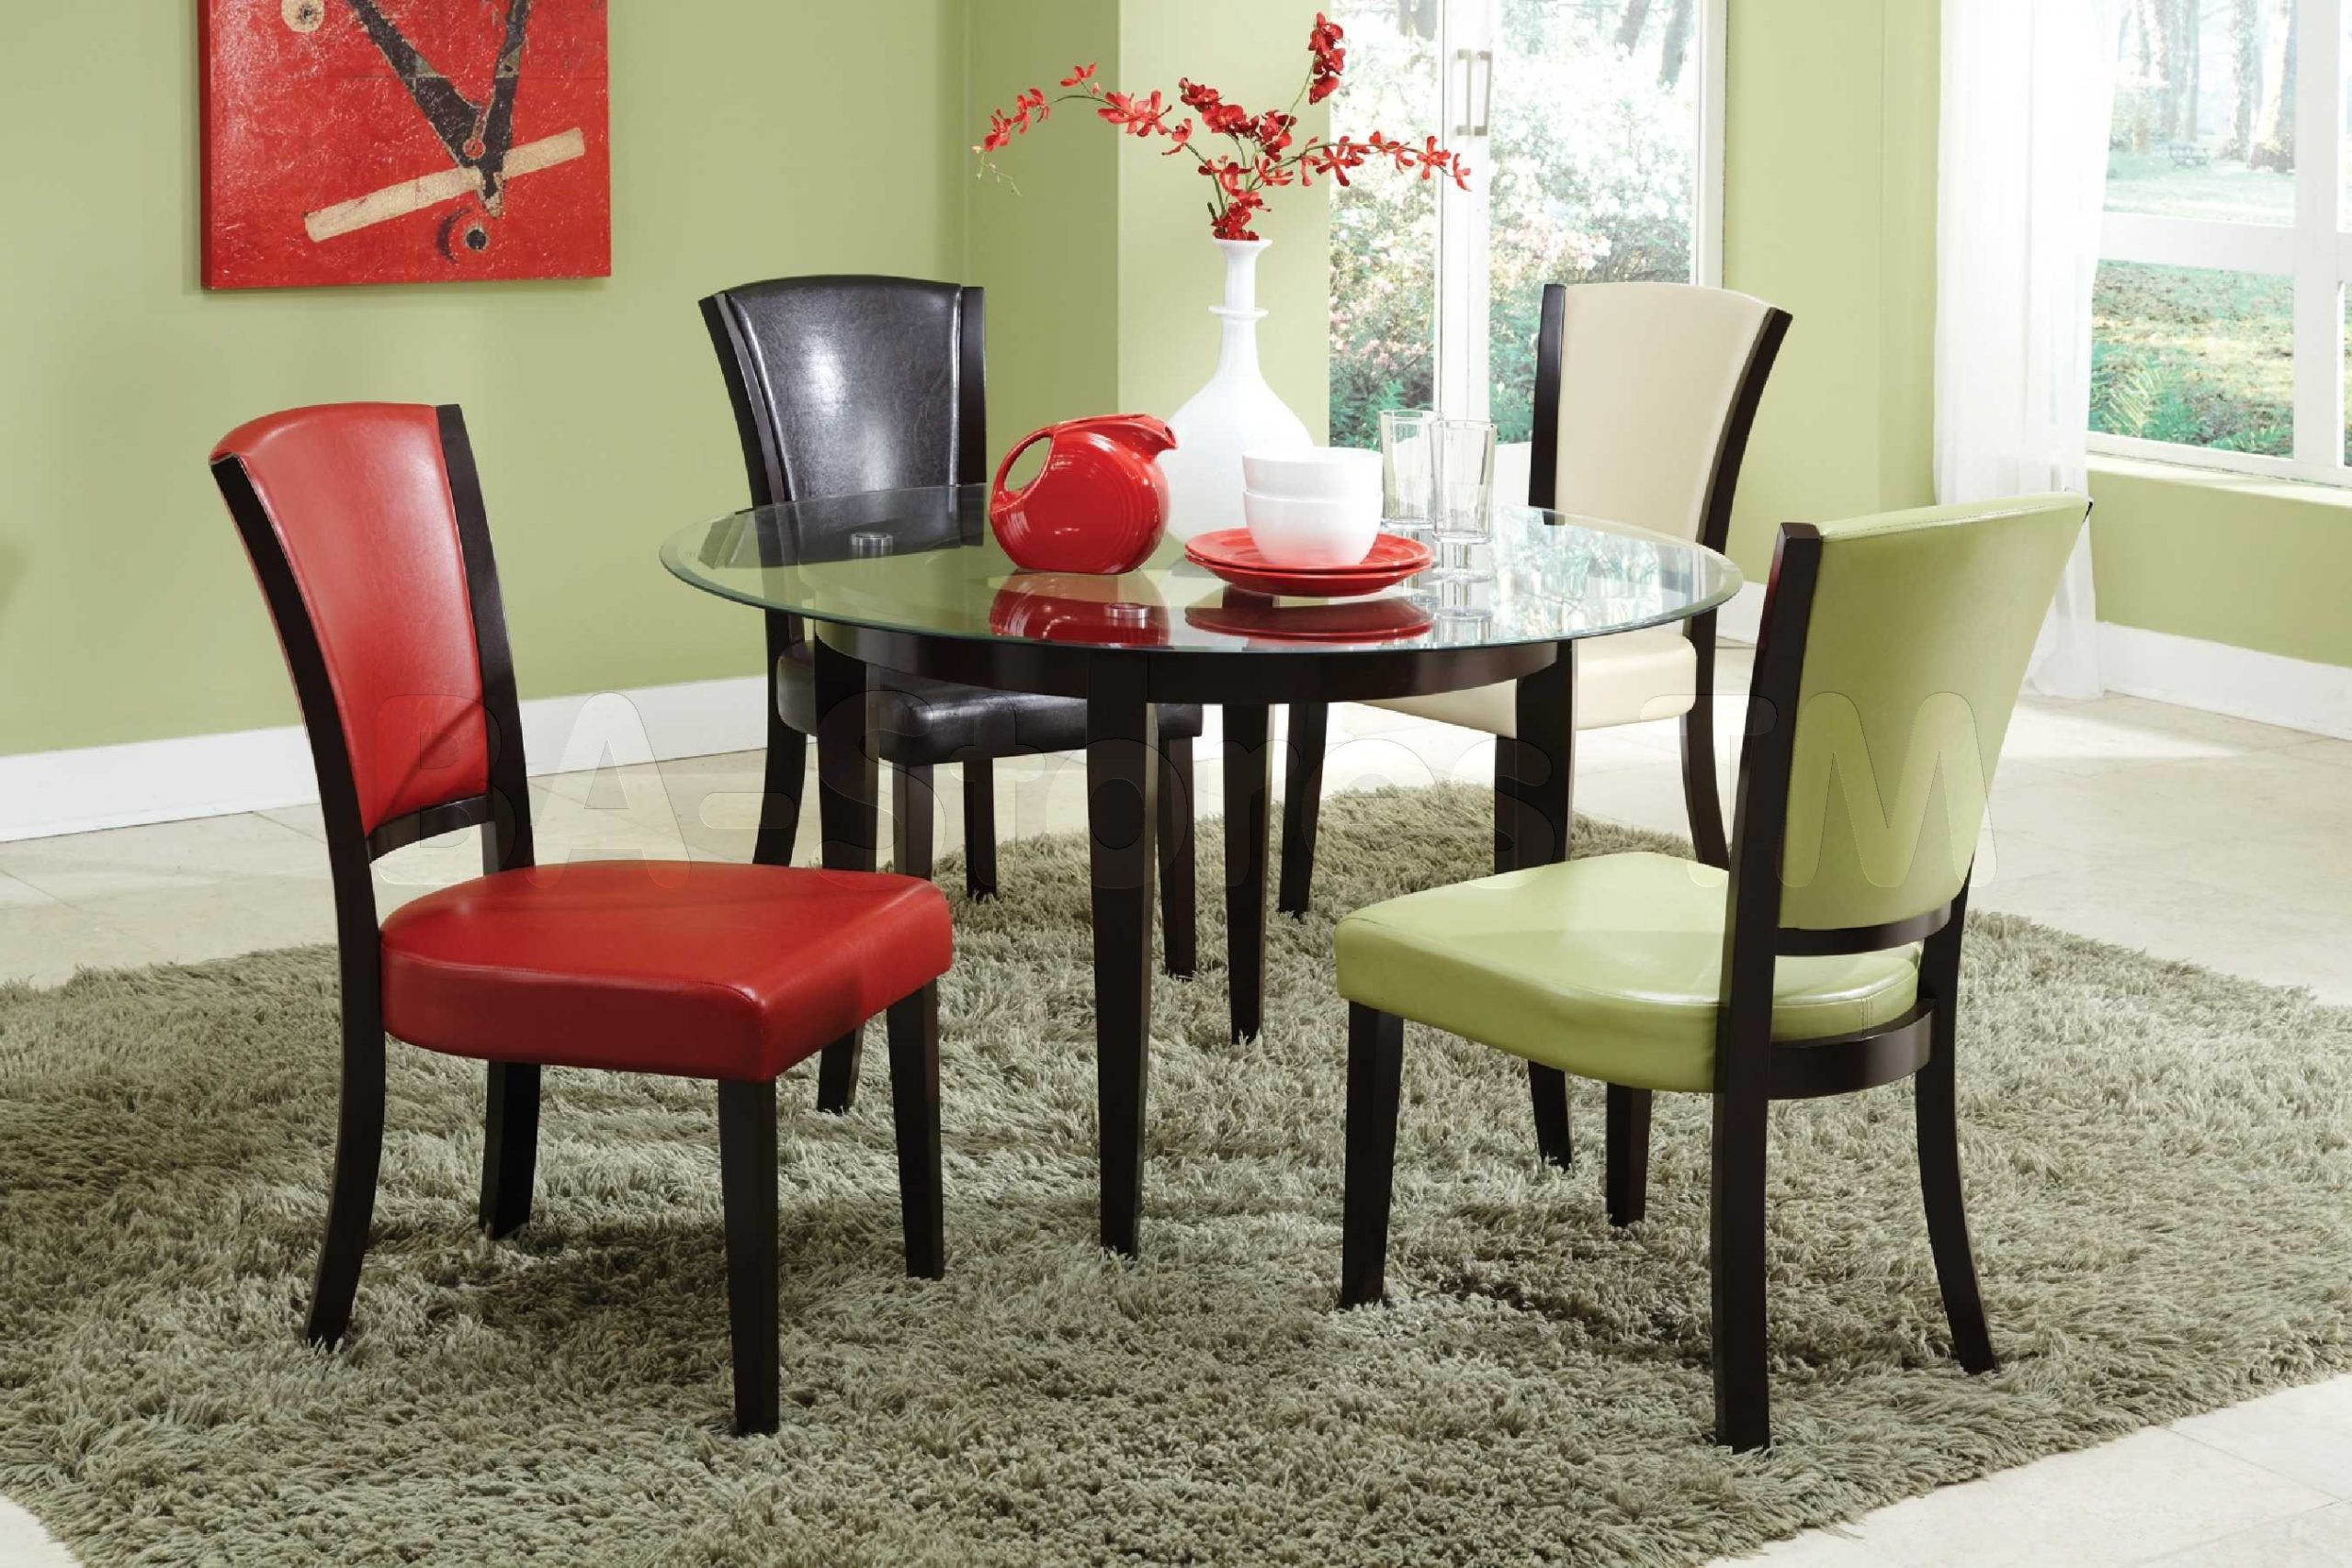 3 Most Common Ways To Consider Before Choosing The Right Glass Dining Table Artmakehome